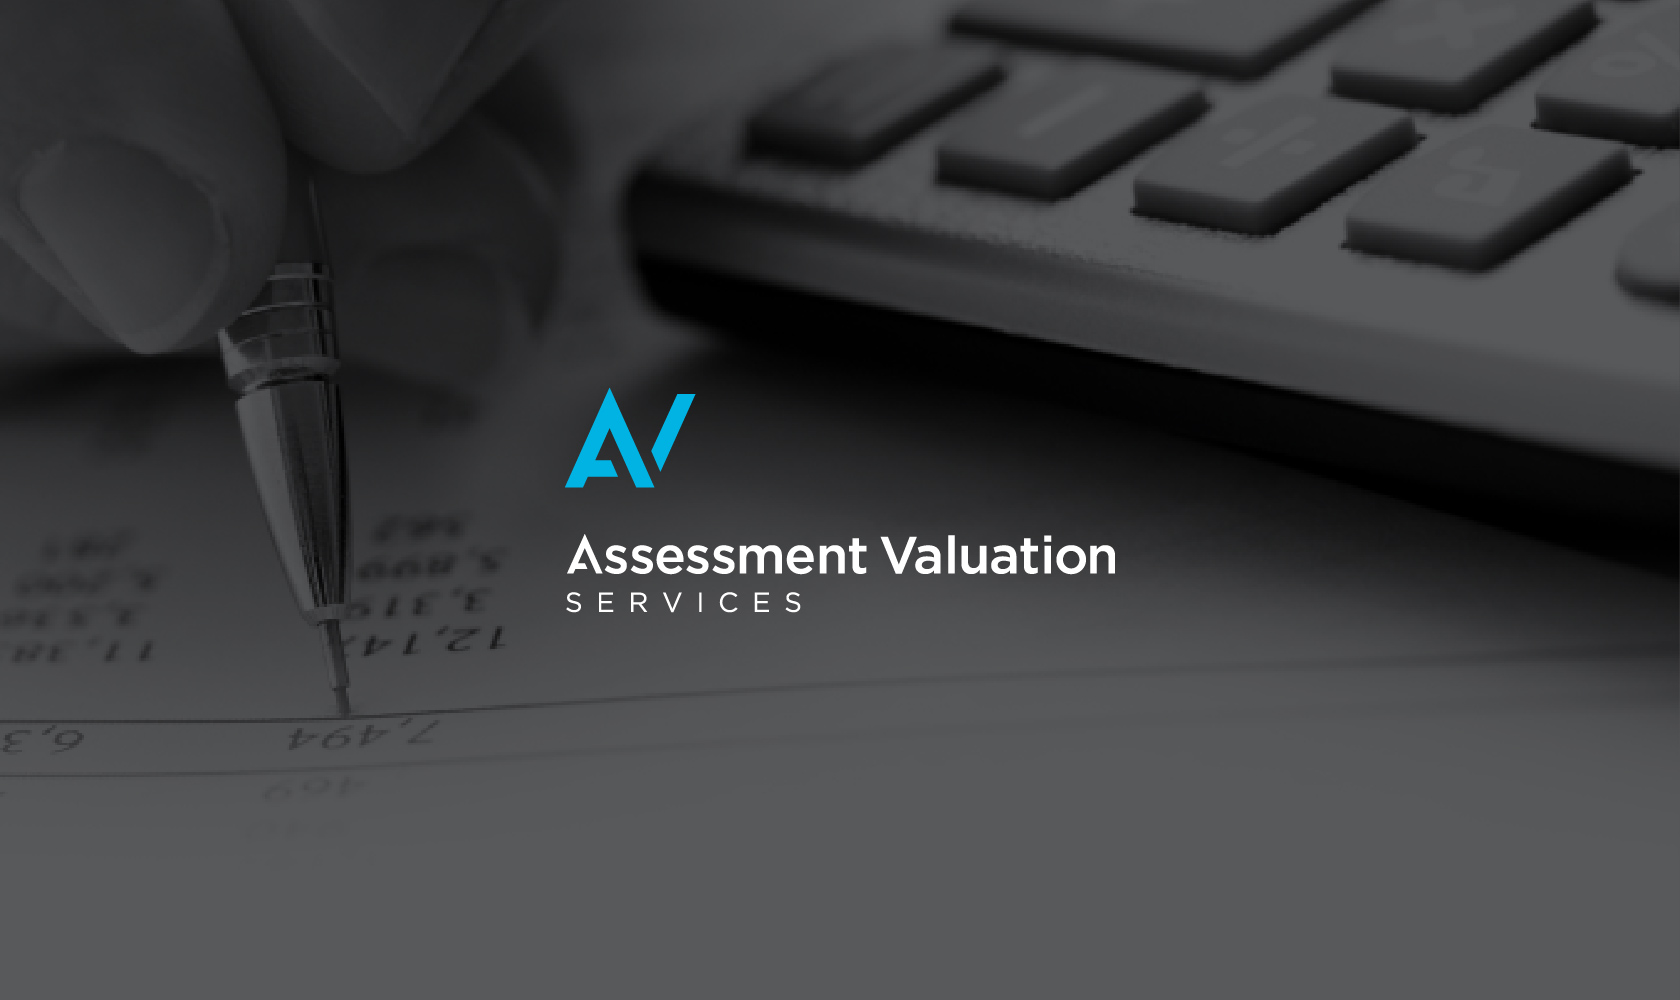 Bill Rogers Design - Assessment Valuation Services - Logo Design - Brand Identity Design